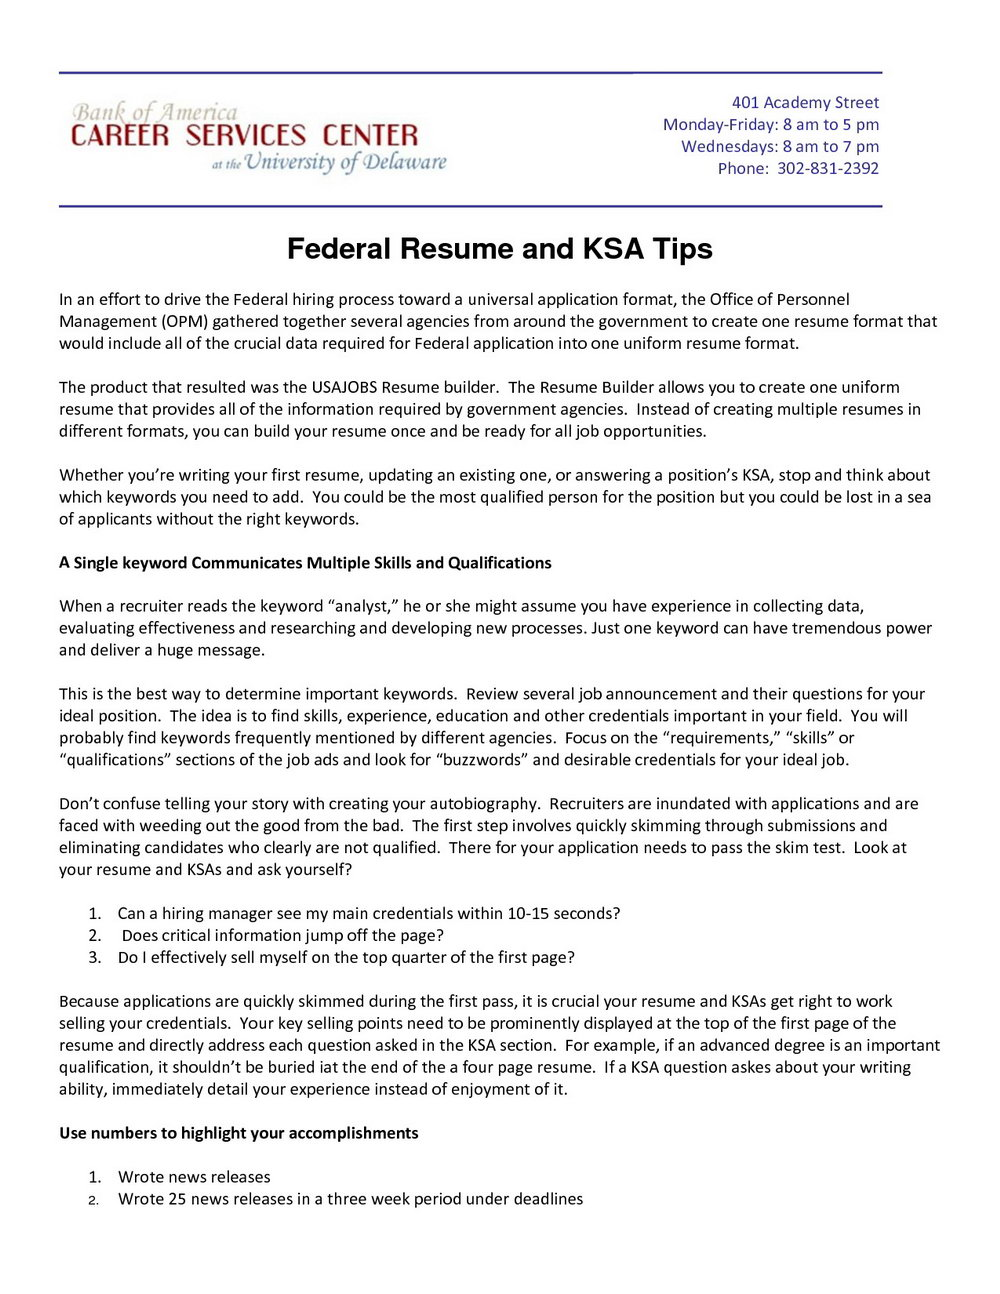 Free Federal Government Resume Builder